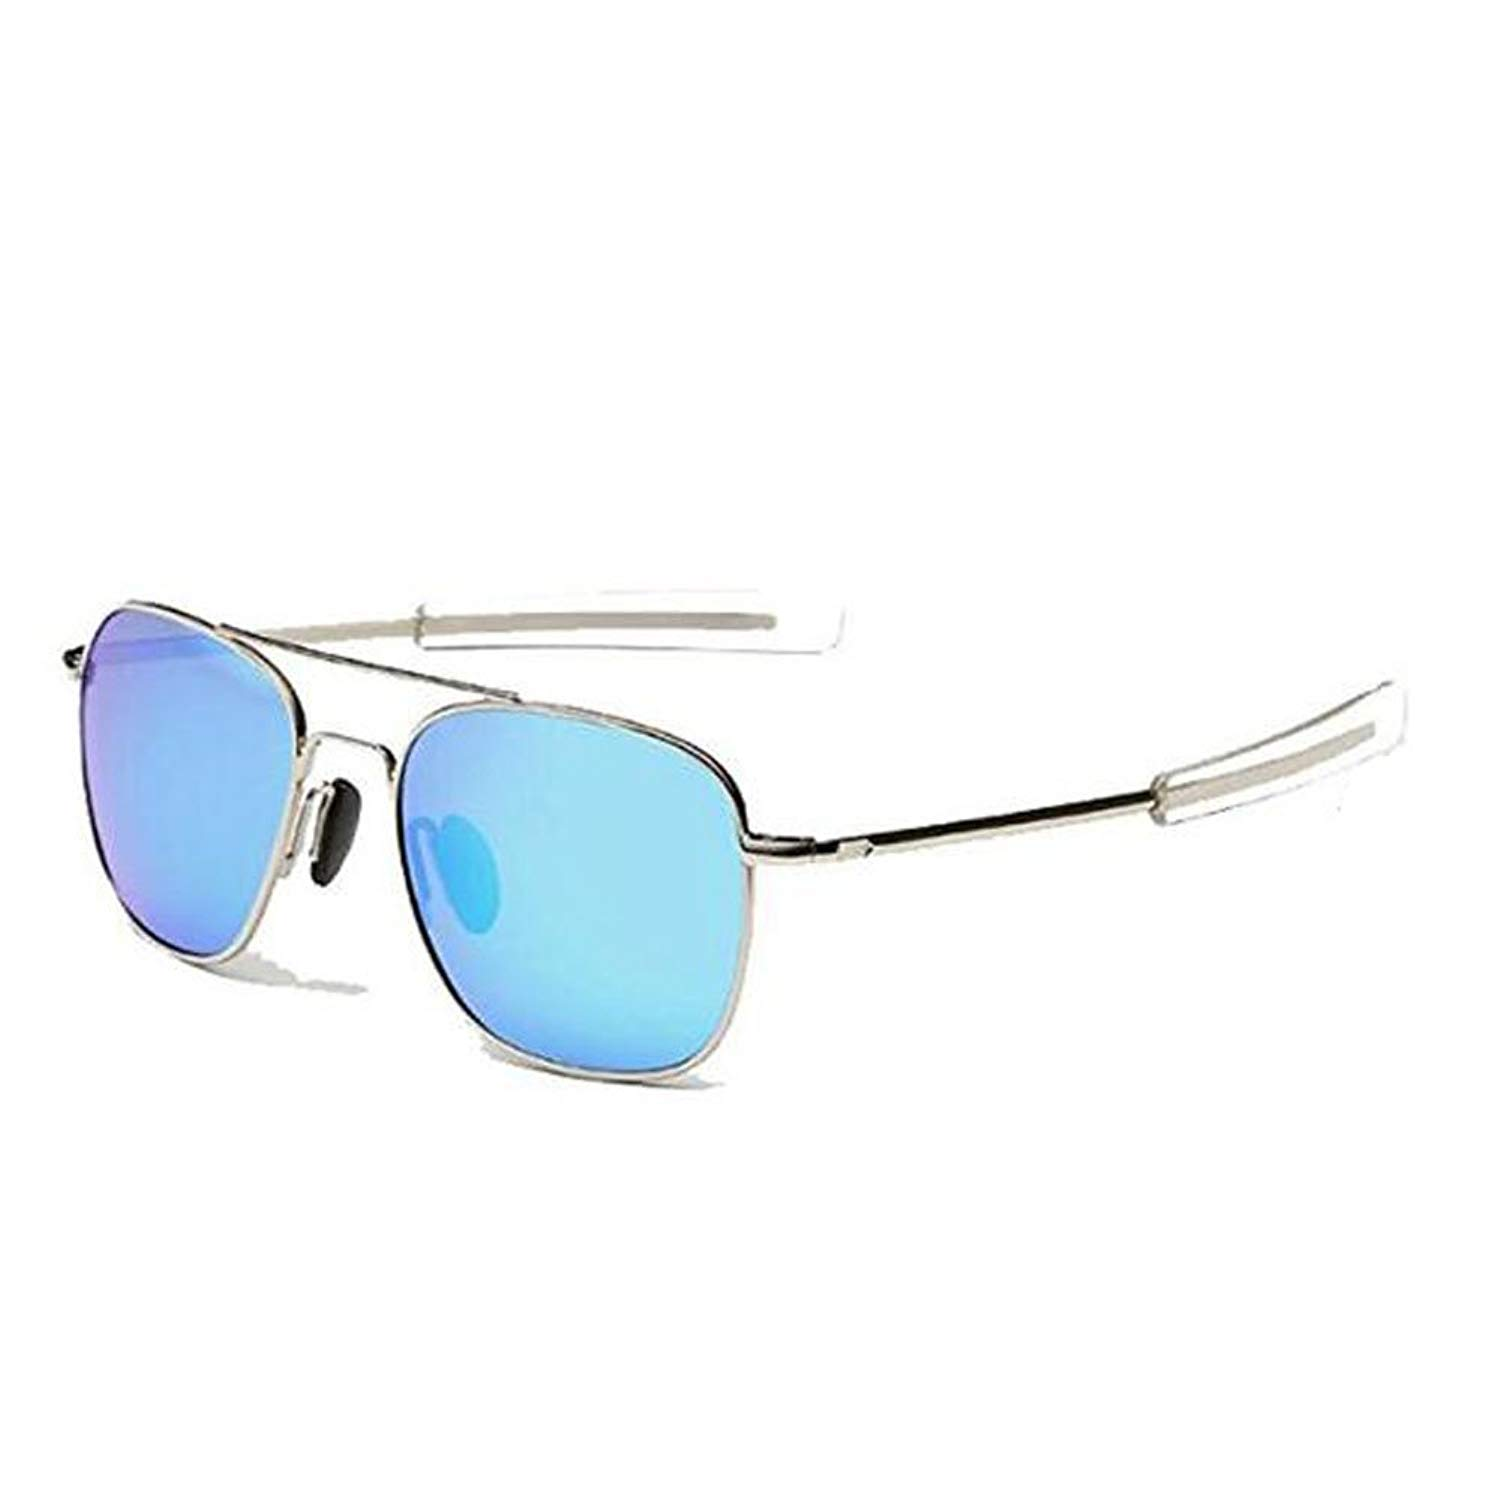 839707ea1aa4 Get Quotations · US Army Aviator Sunglasses Polarized Military Pilot  Bayonet Temple Classic Retro